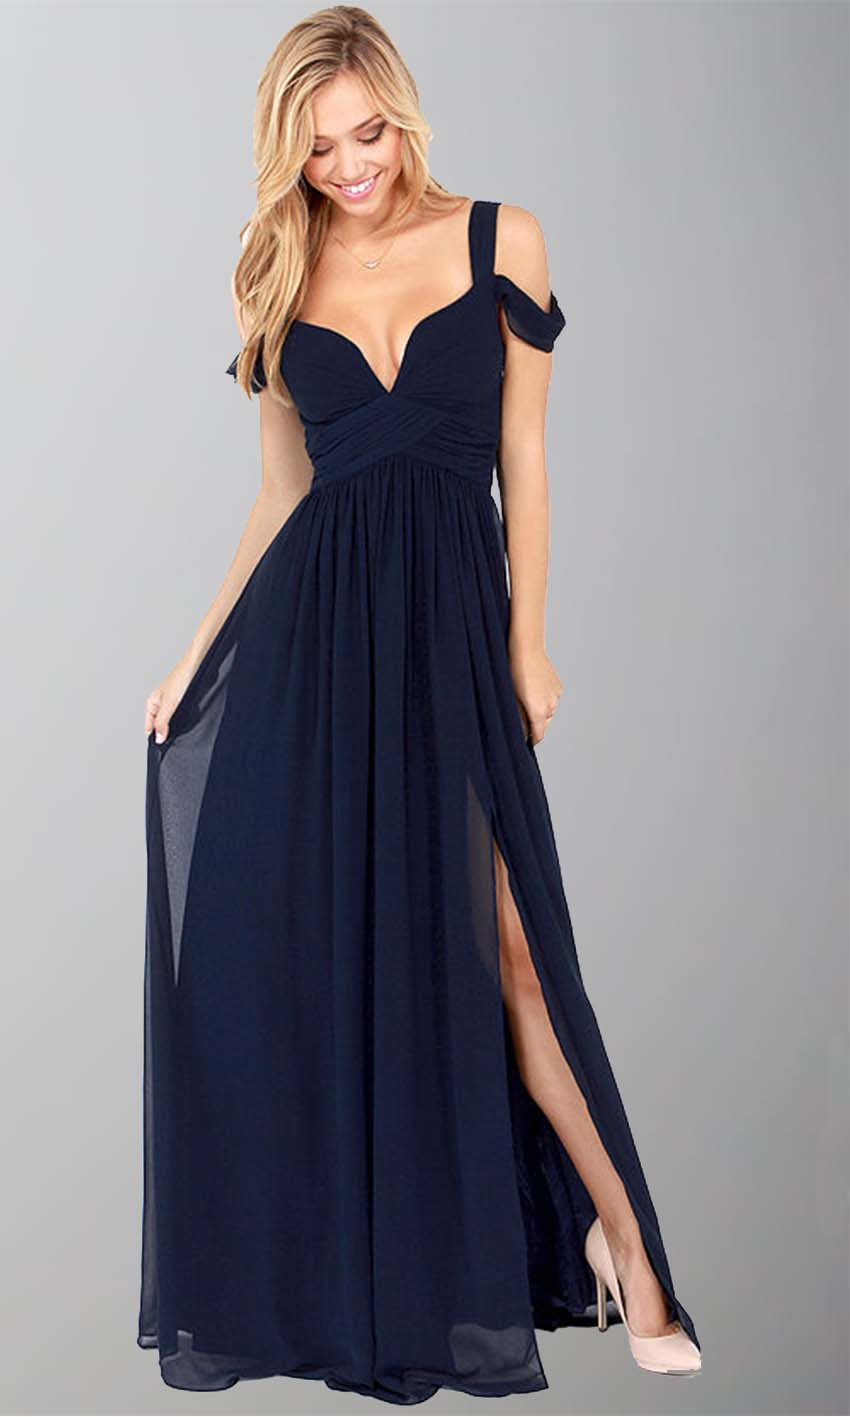 £87.00 : cheap prom dresses uk, bridesmaid dresses, 2014 prom & evening dresses, look for cheap elegant prom dresses 2014, cocktail gowns, or dresses for special occasions? kissprom.co.uk offers various bridesmaid dresses, evening dress, free shipping to uk etc.